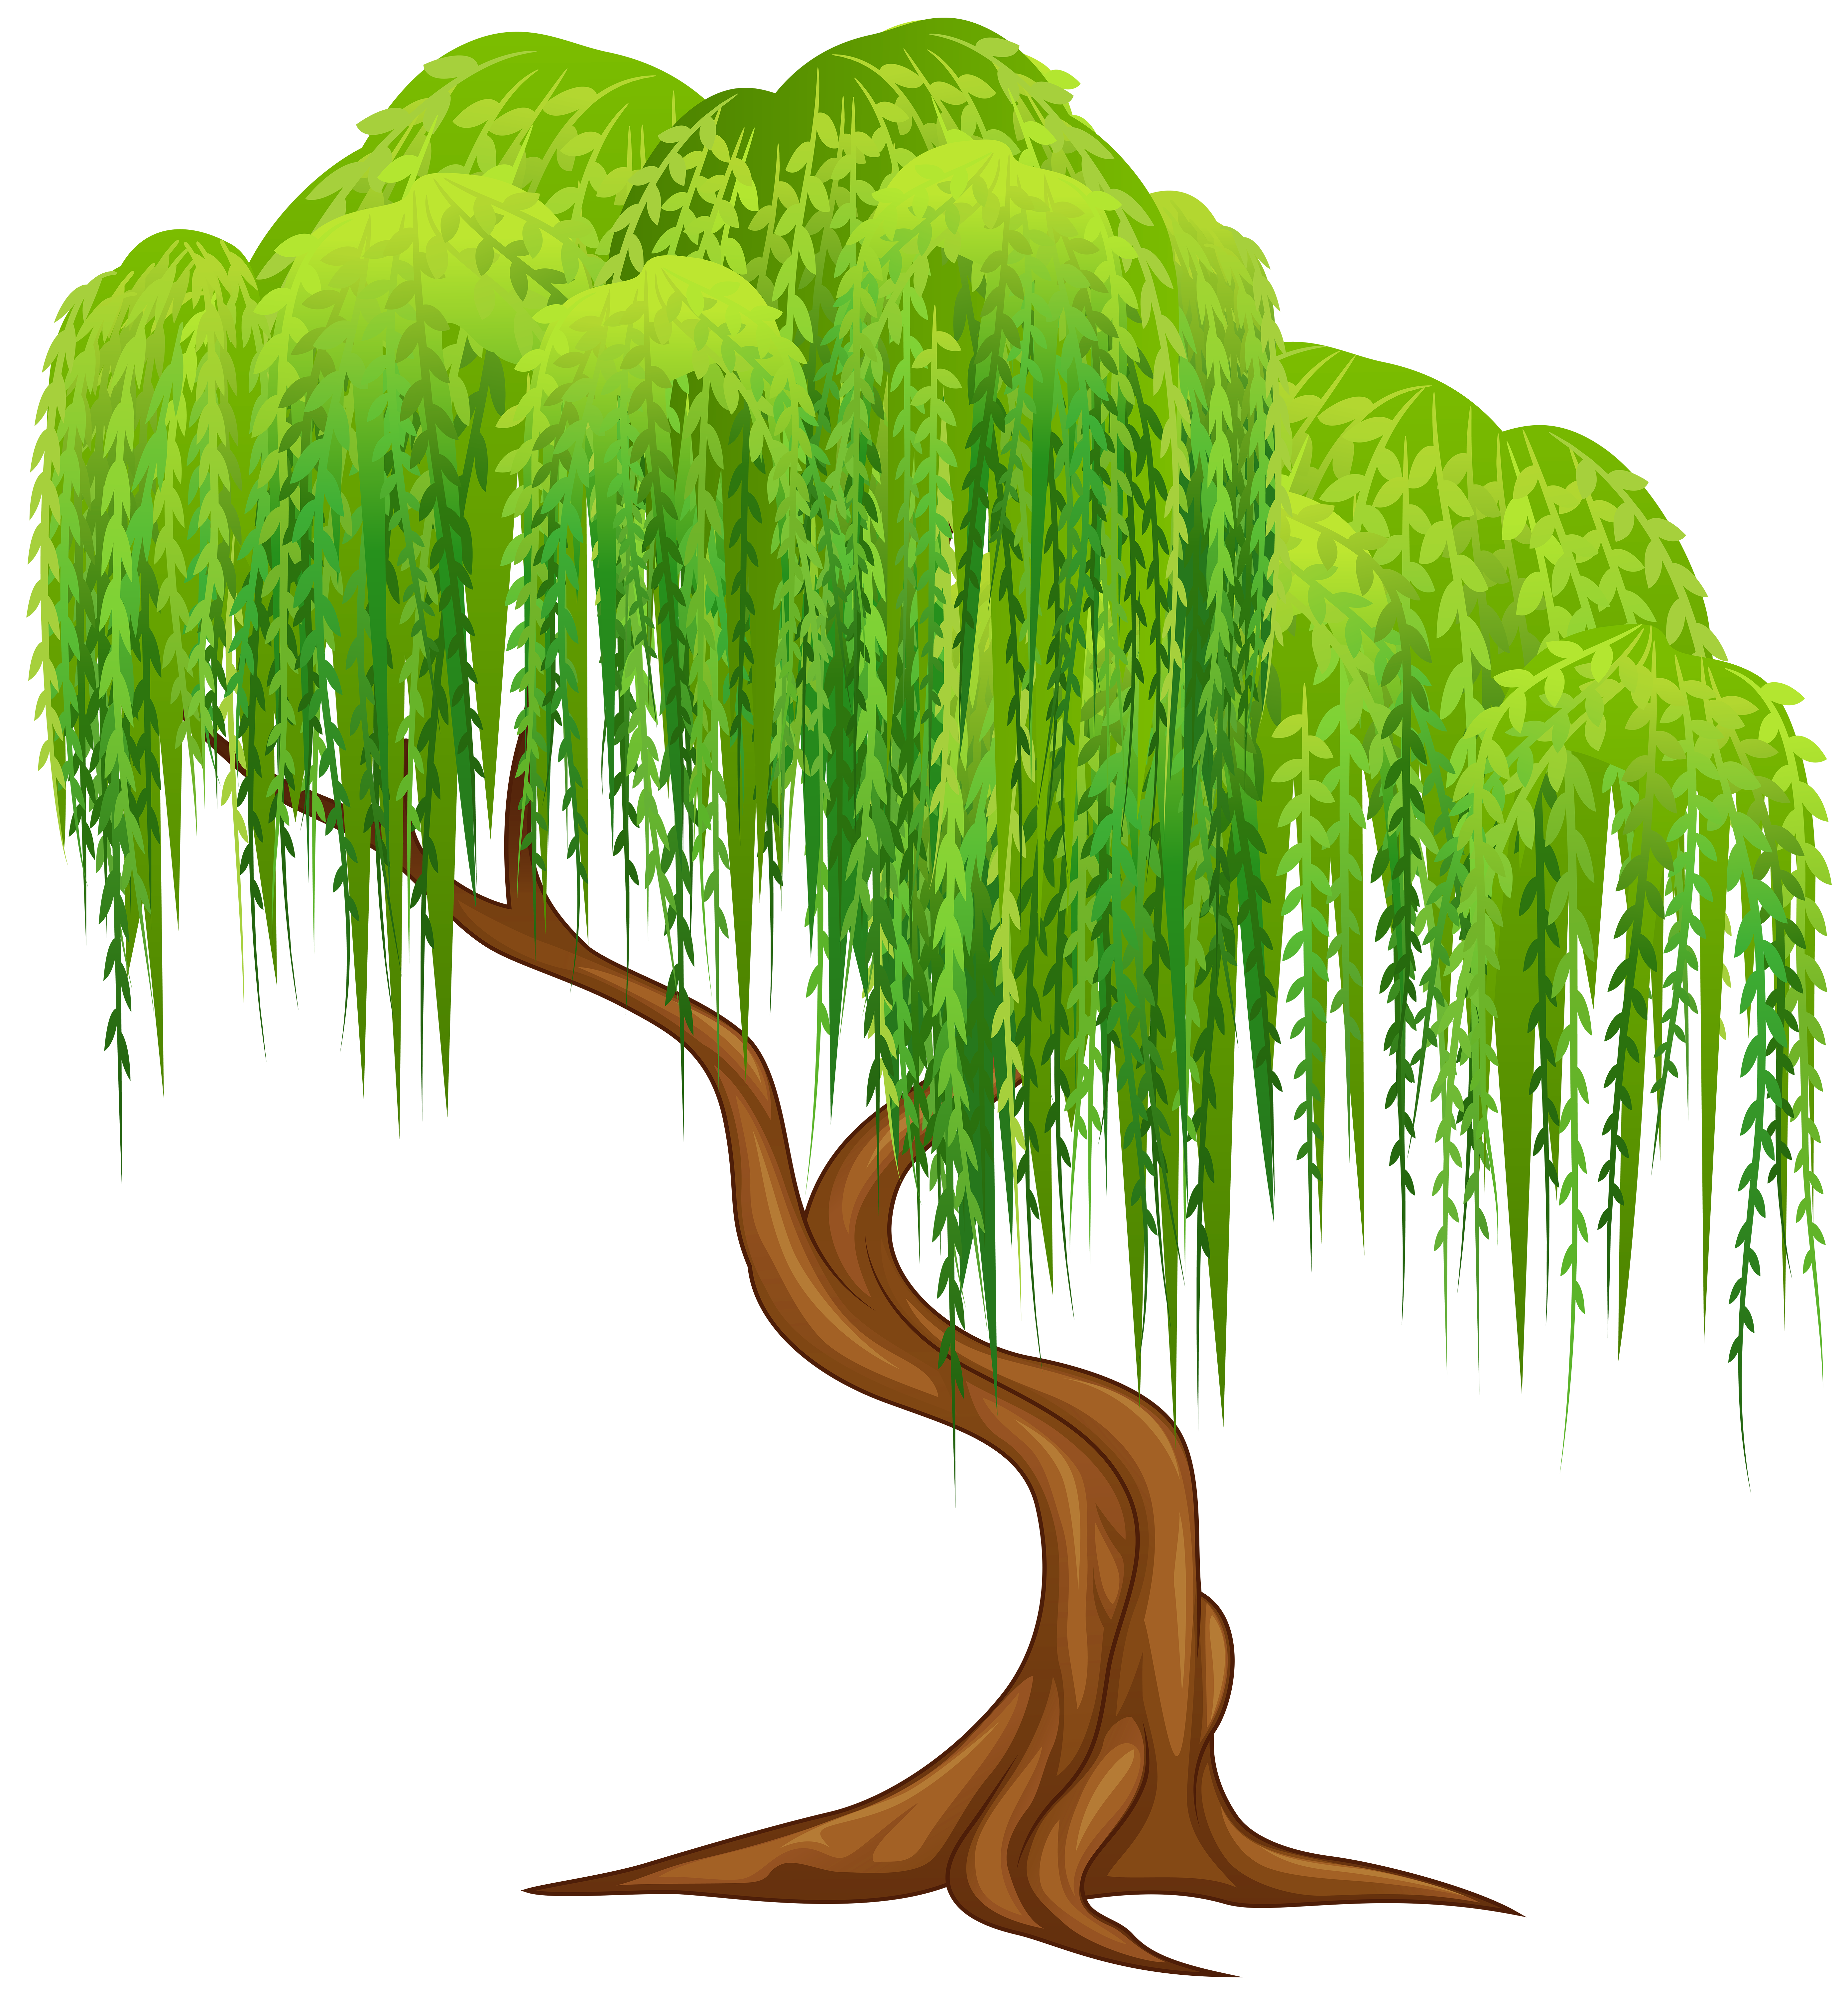 Weeping willow Tree Wall decal Clip art.